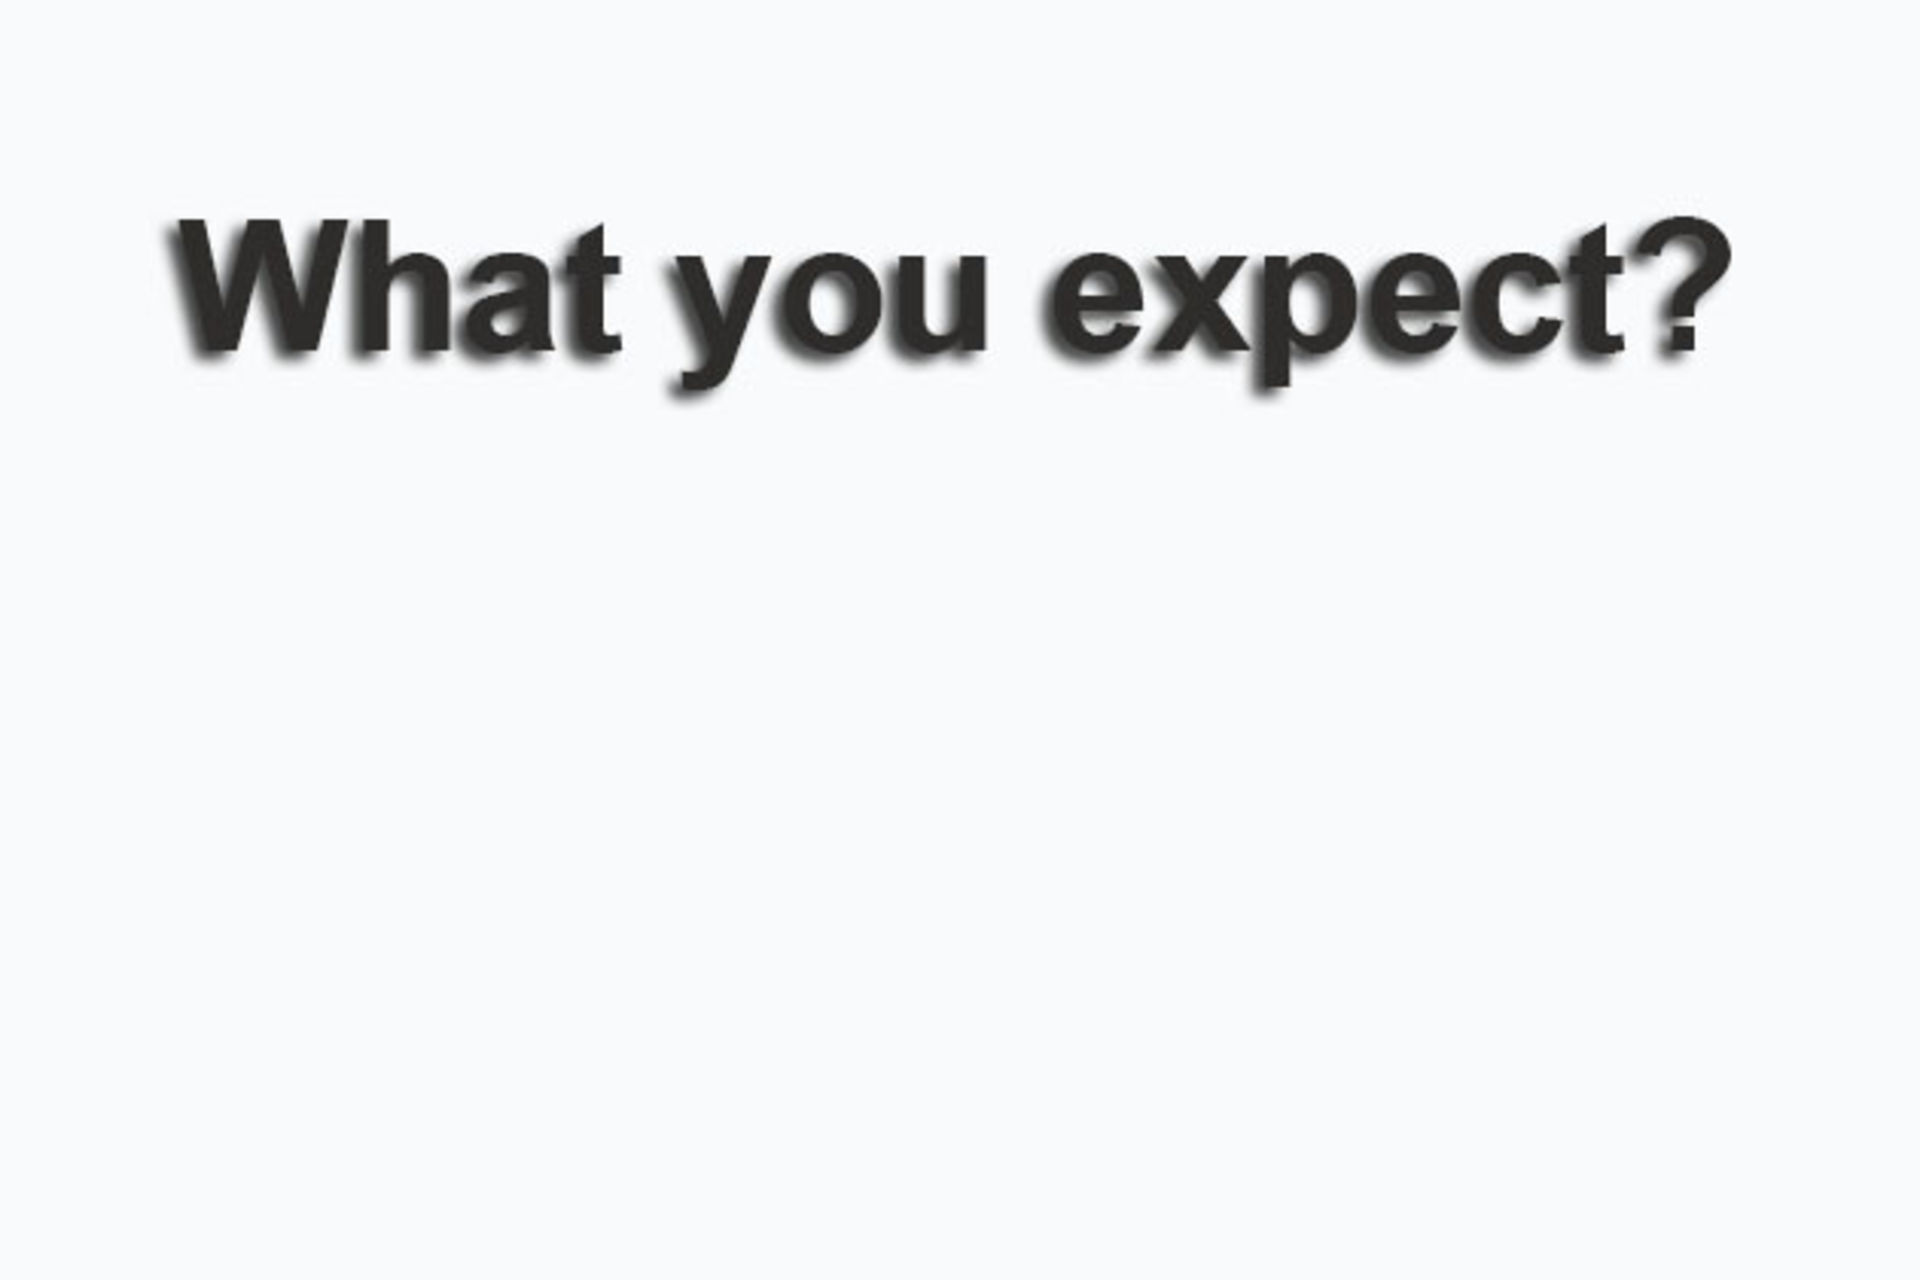 What you expect?